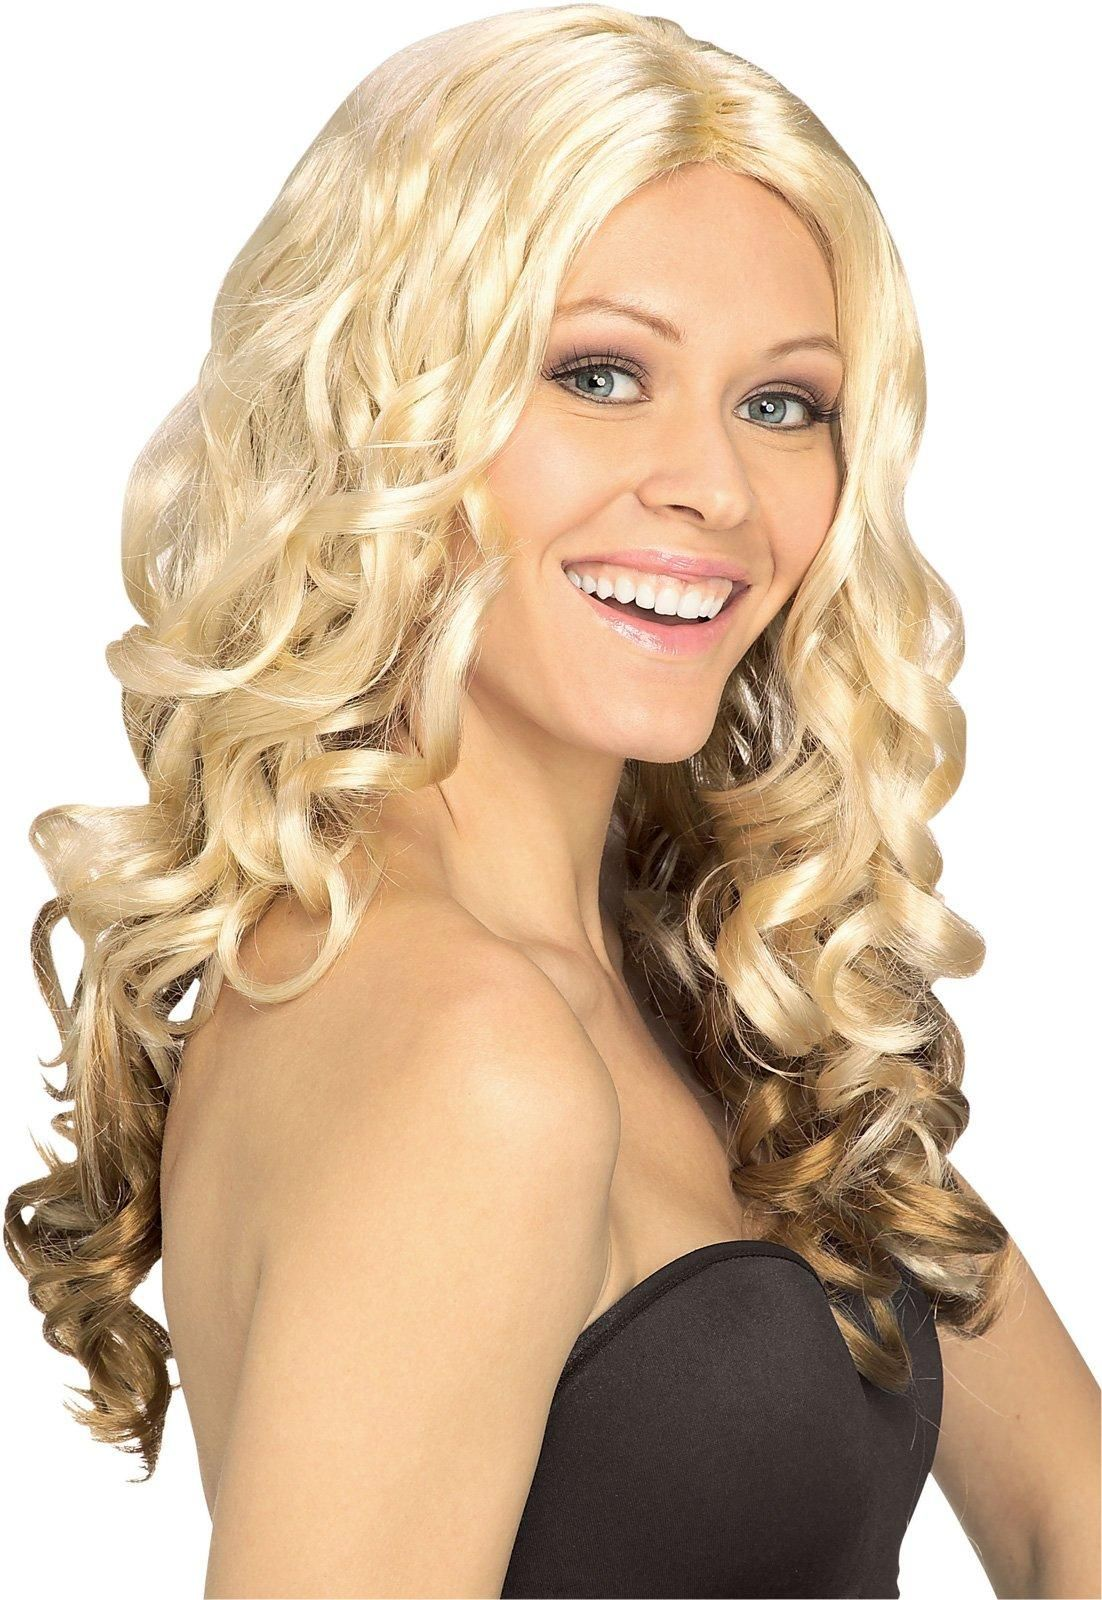 2020 Fashion Ombre Blonde Wigs 613 Curly Full Lace Wig